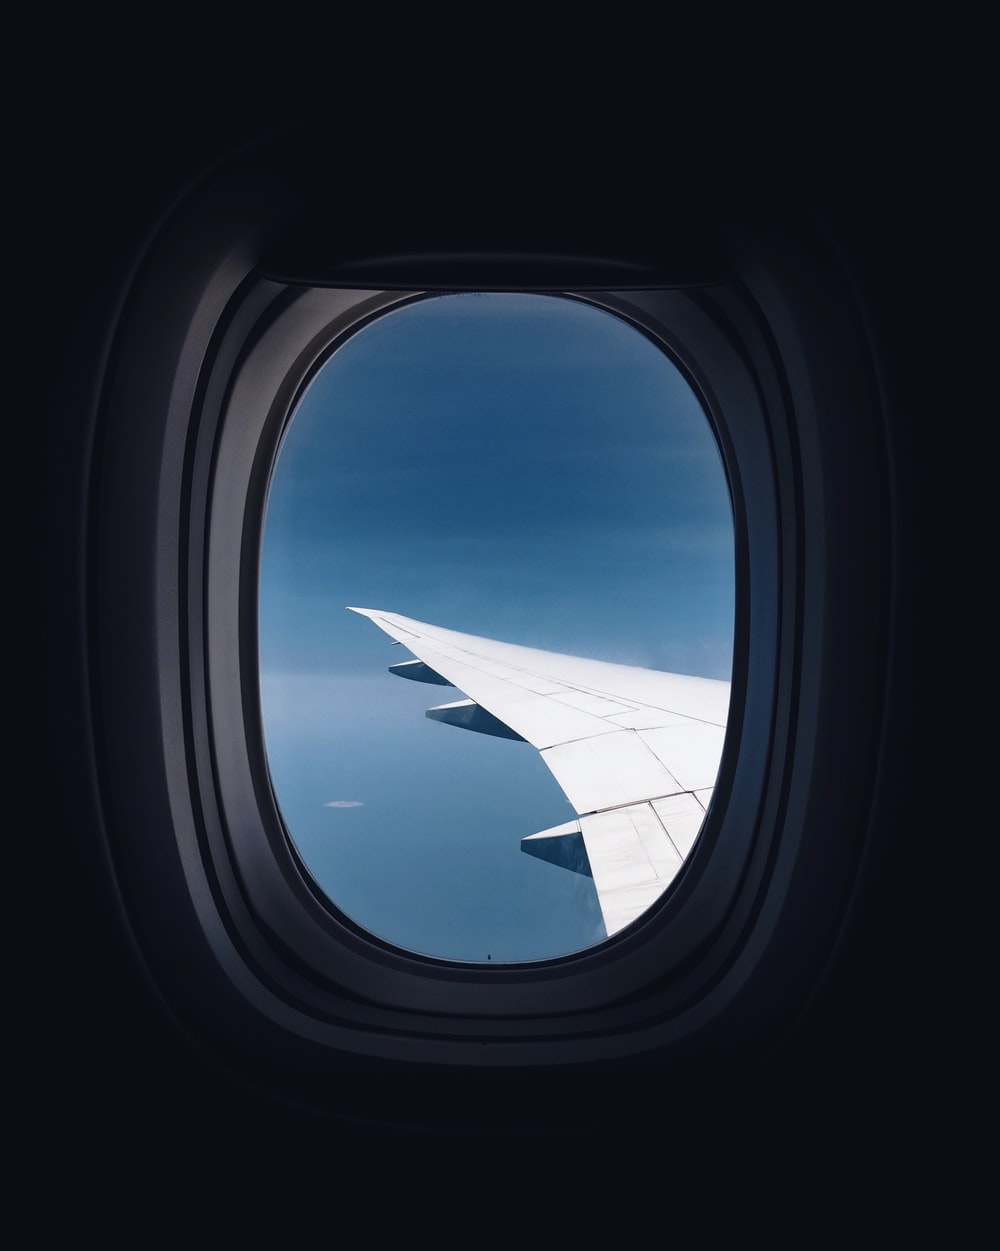 airplane window view of wings